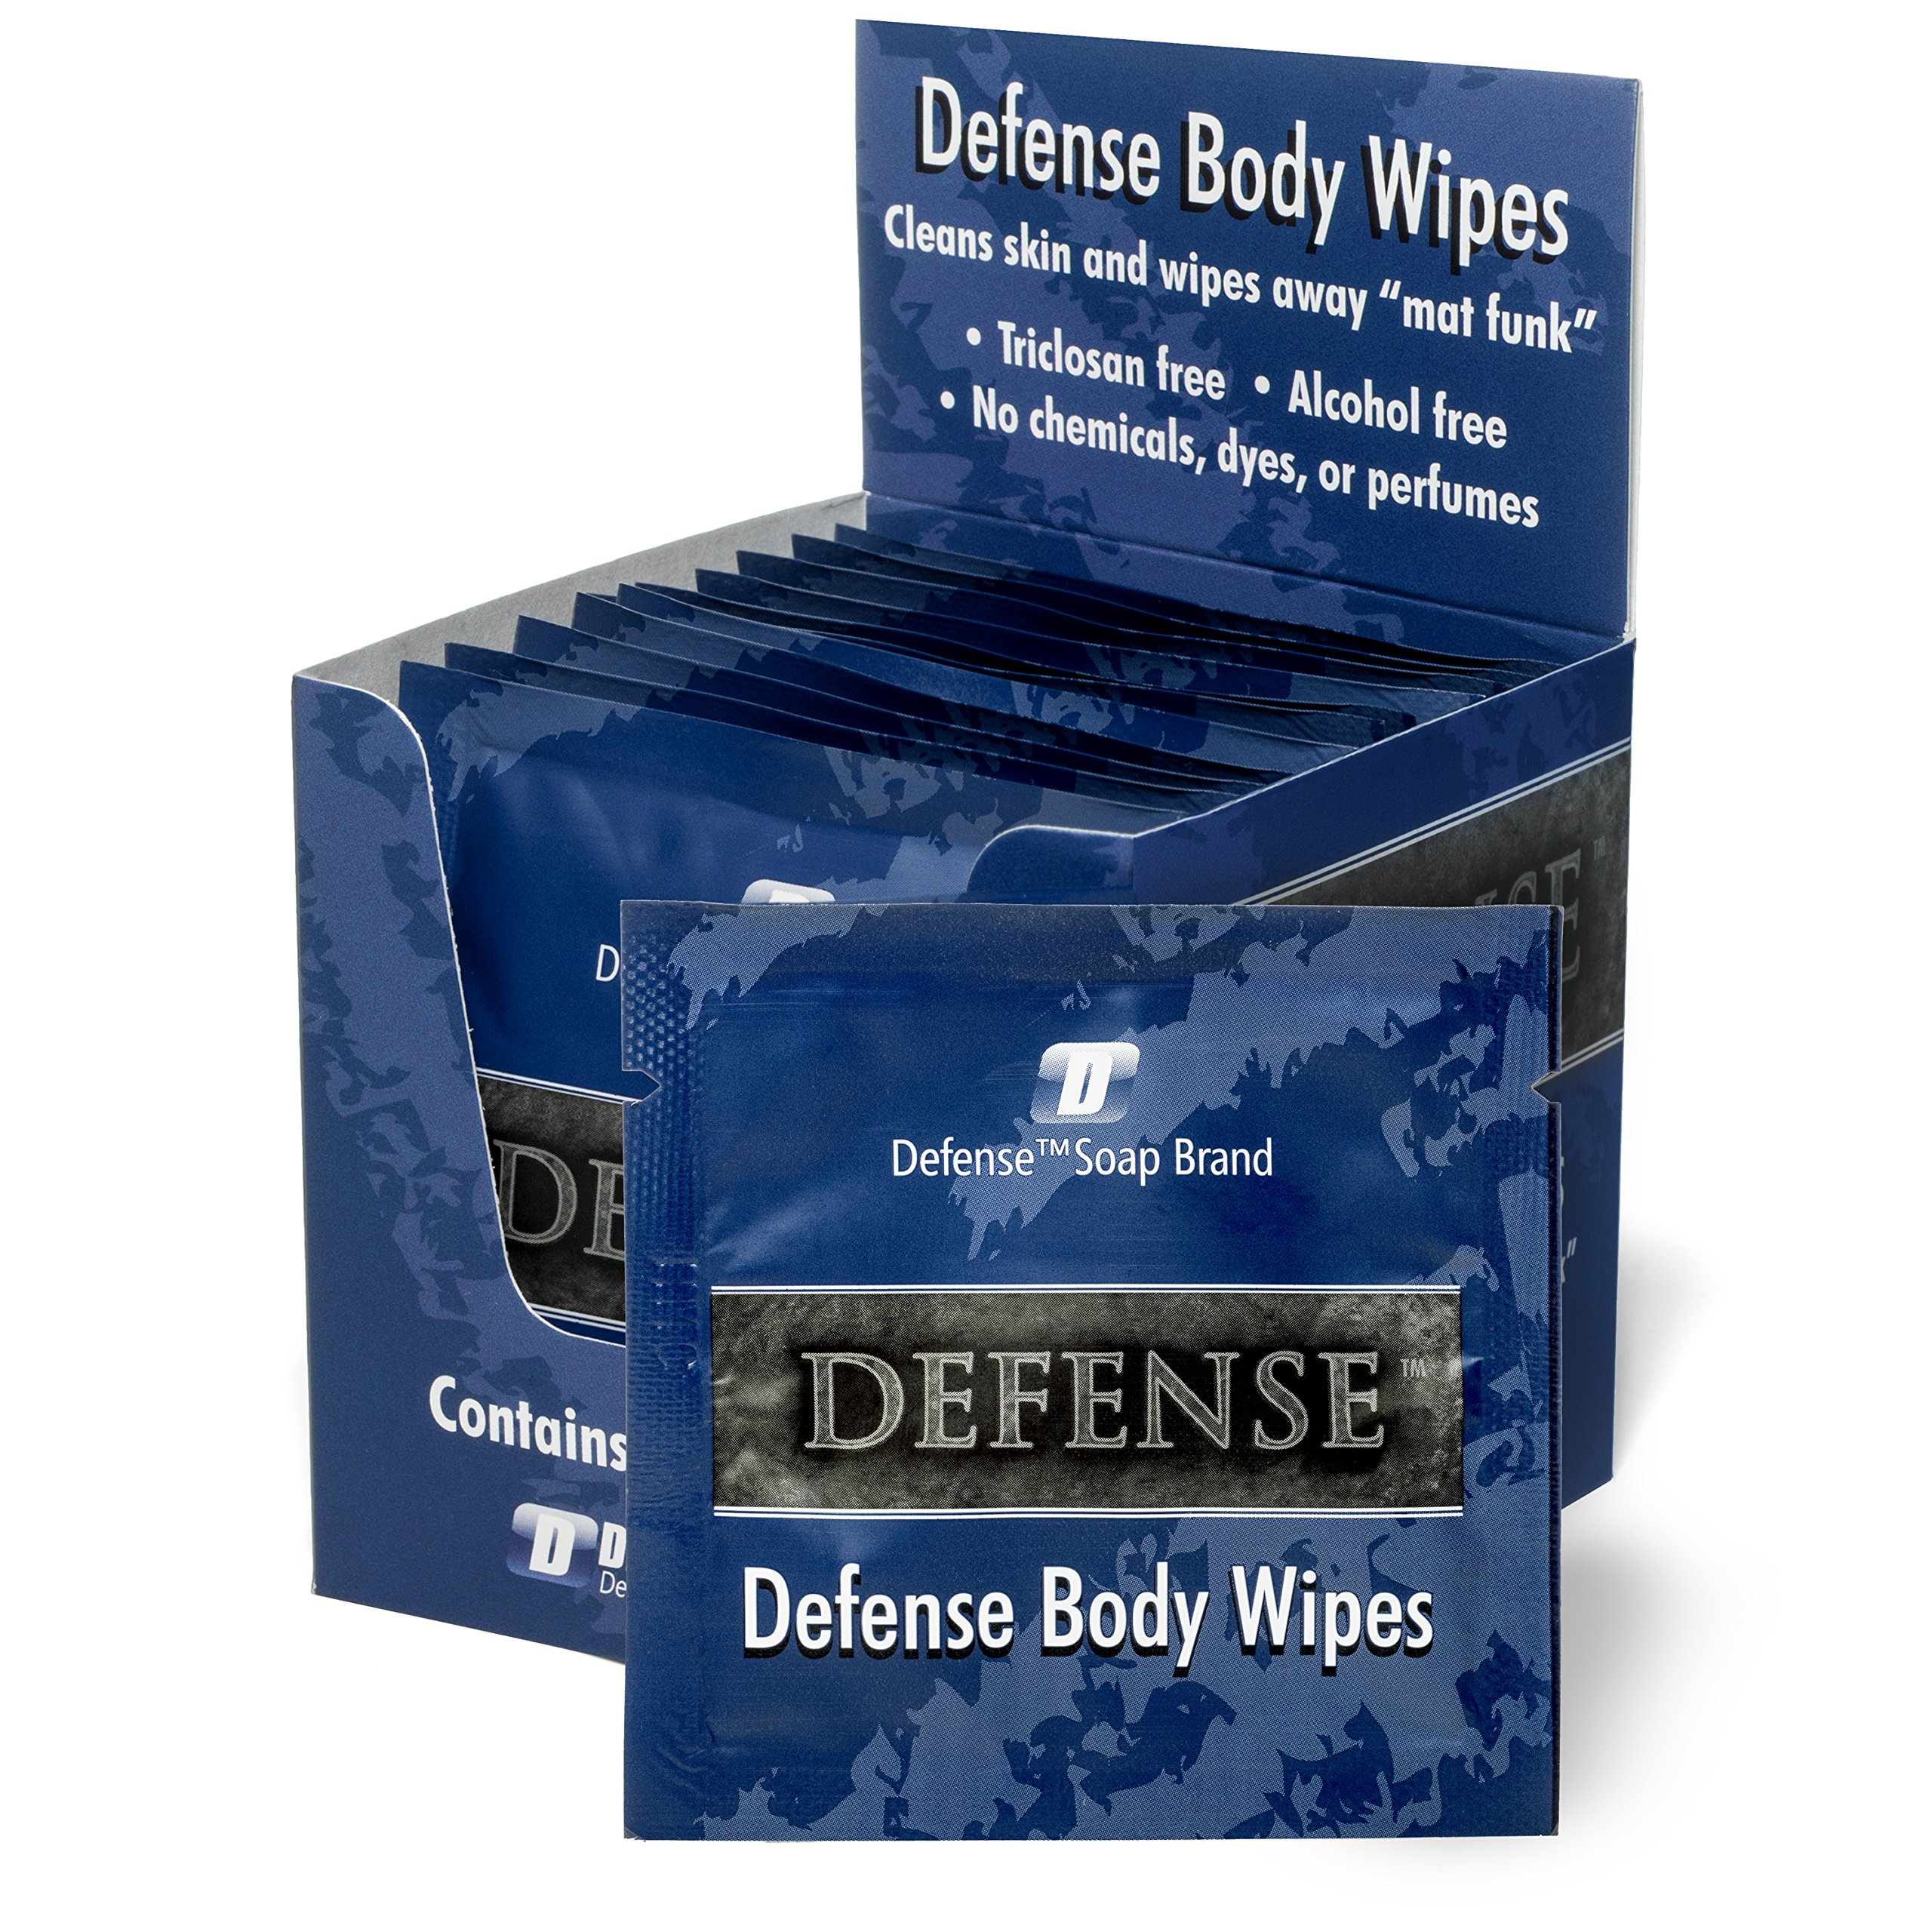 Defense Soap Body Wipes, 12 Individually Packed Travel Wipes - 100% Natural and Pure Pharmaceutical Grade Tea Tree Oil and Eucalyptus Oil by Defense Soap